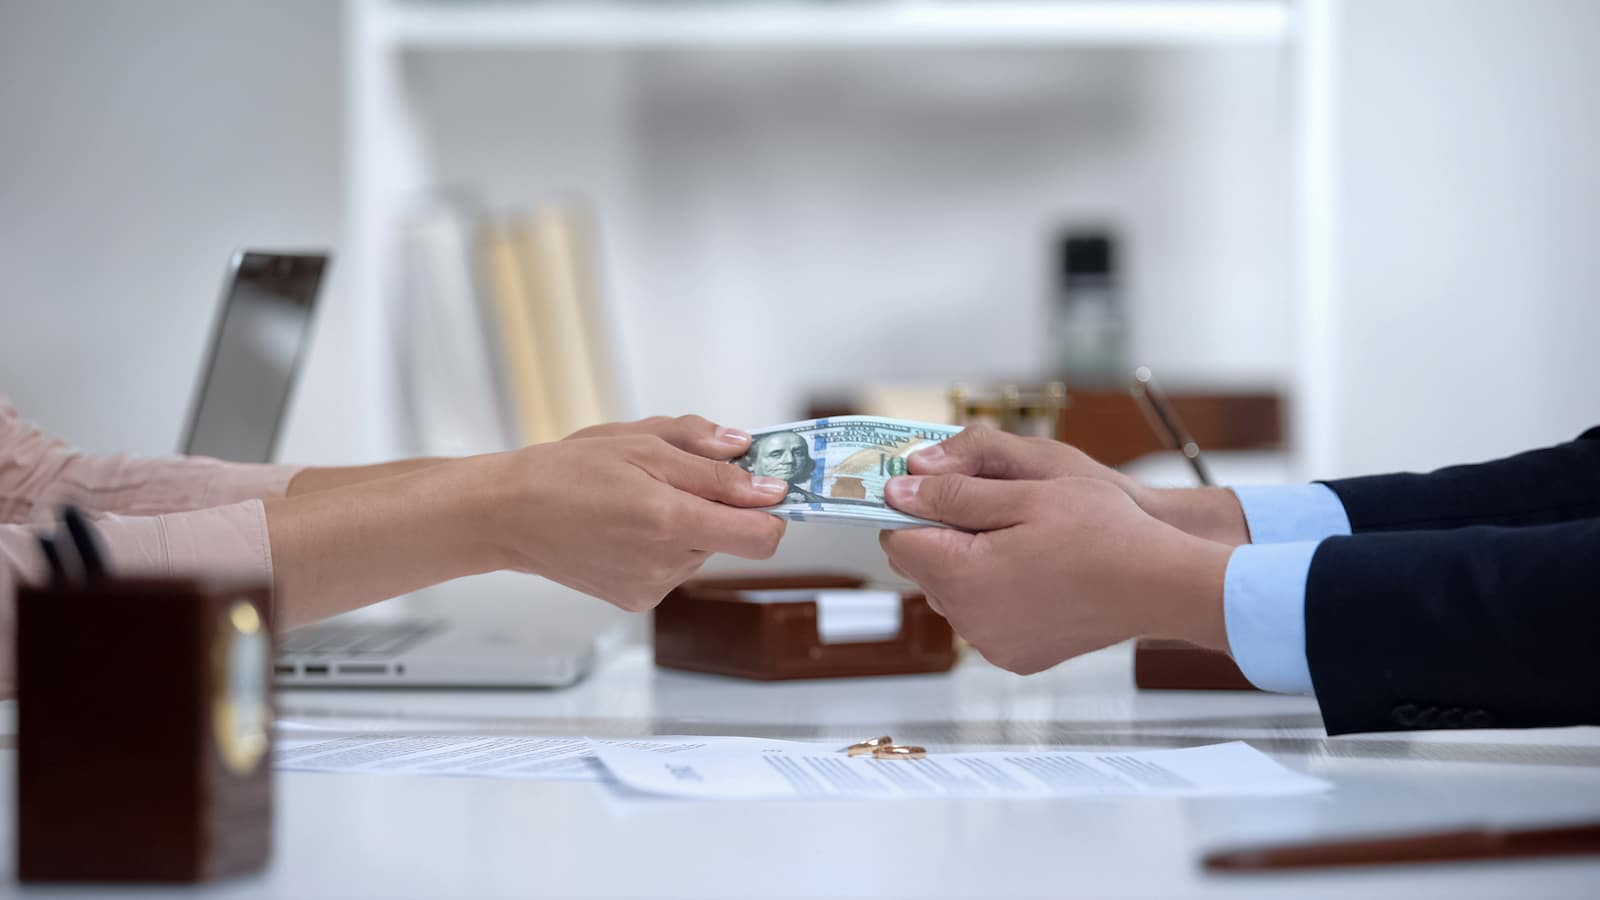 Male and female hands pulling money, dividing marital property during divorce